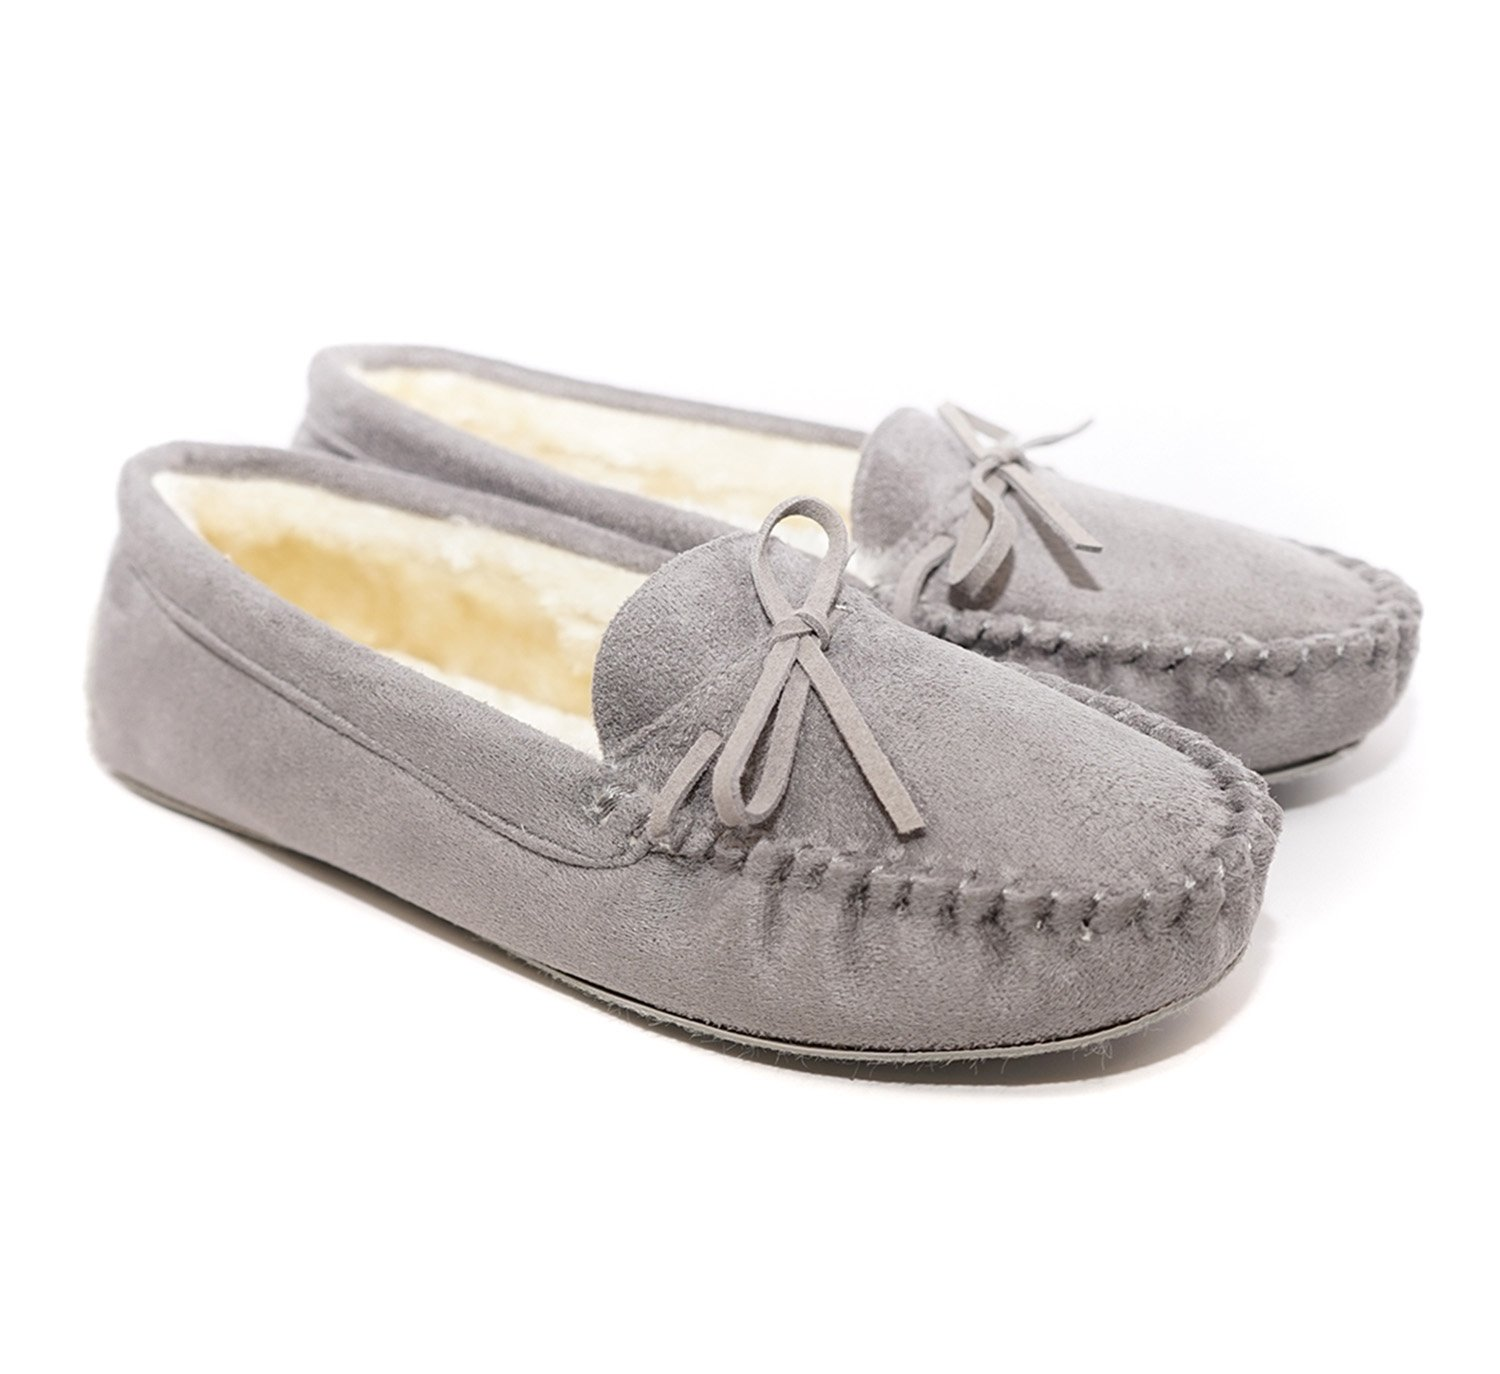 Charles Albert Women's Auzy Fuax Fur Winter Moccasins Slippers (Grey, 7)